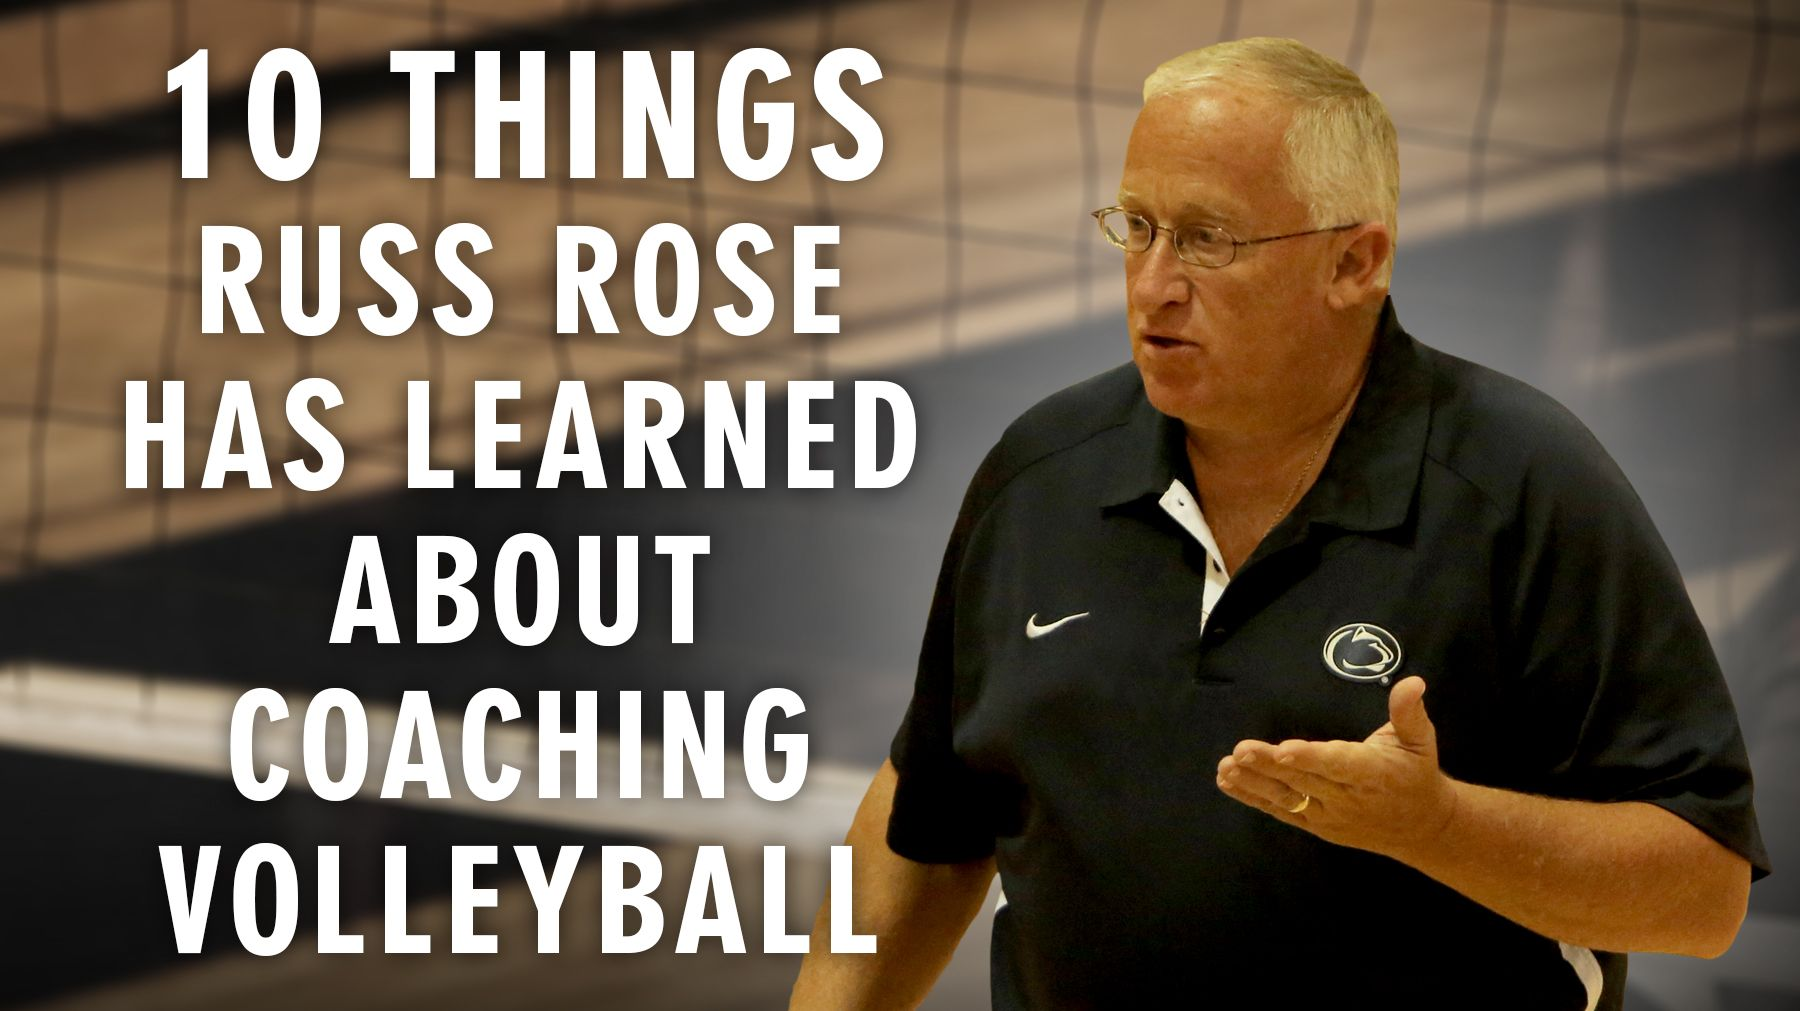 10 Things Russ Rose Has Learned About Coaching Volleyball Coaching Volleyball Volleyball Tryouts Volleyball